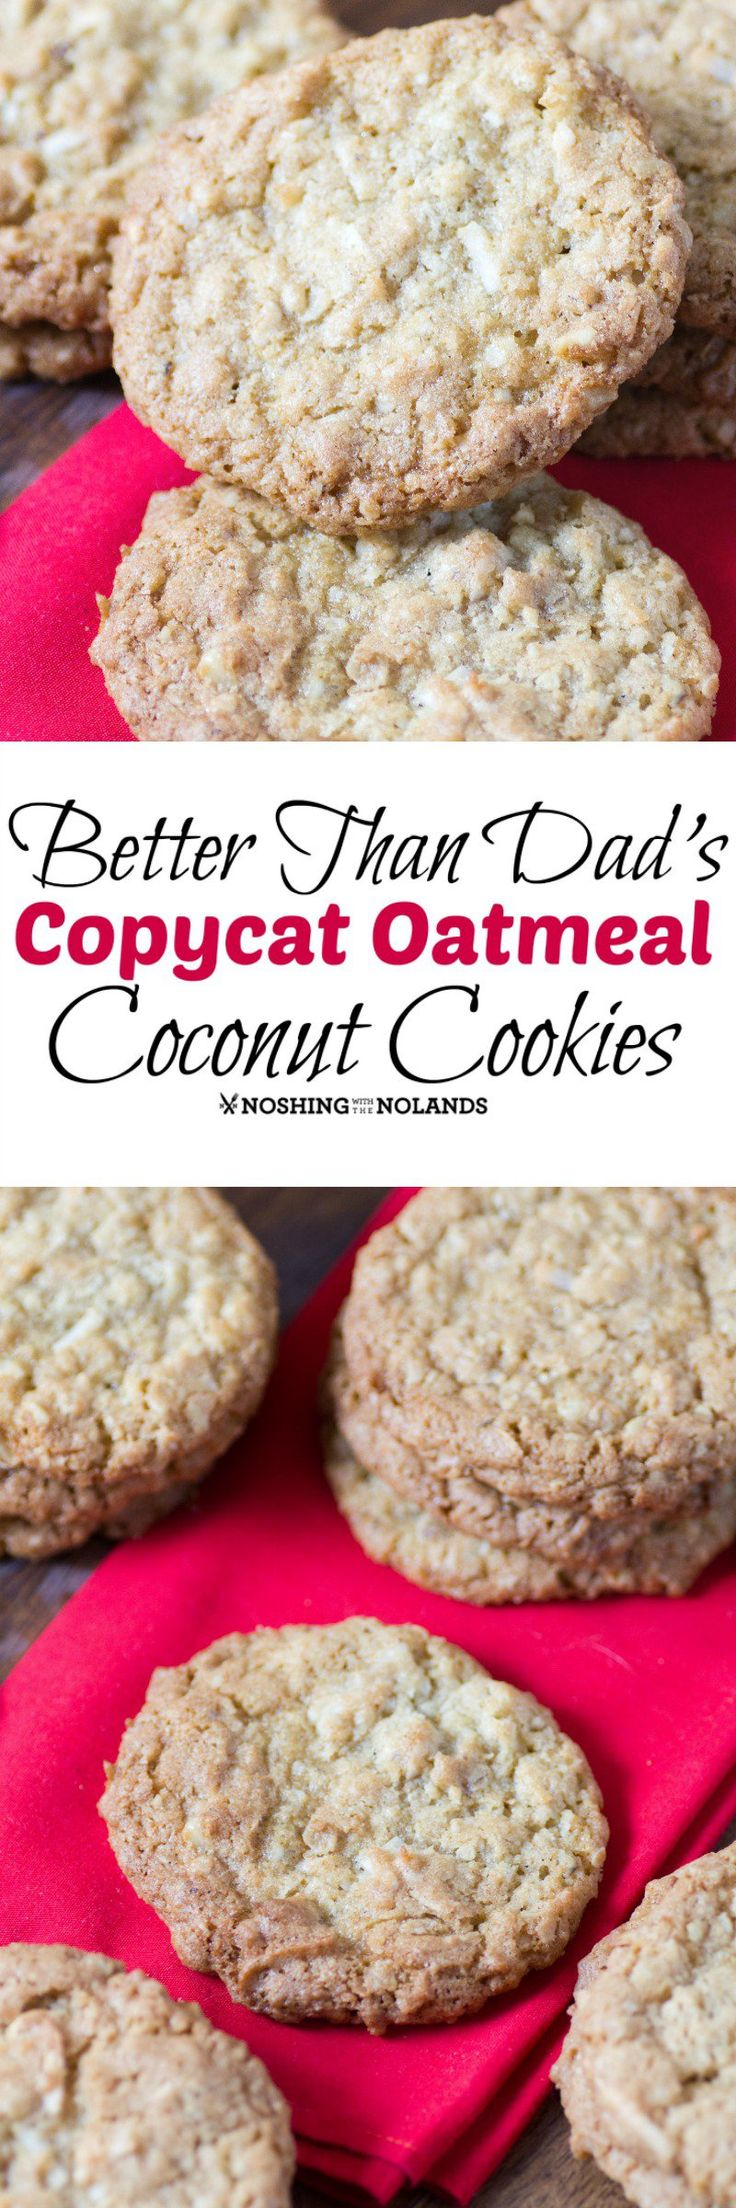 Better Than Dad's Copycat Oatmeal Coconut Cookies by Noshing With The Nolands taste so good with a big glass of refreshing milk, bringing back cherished childhood memories.